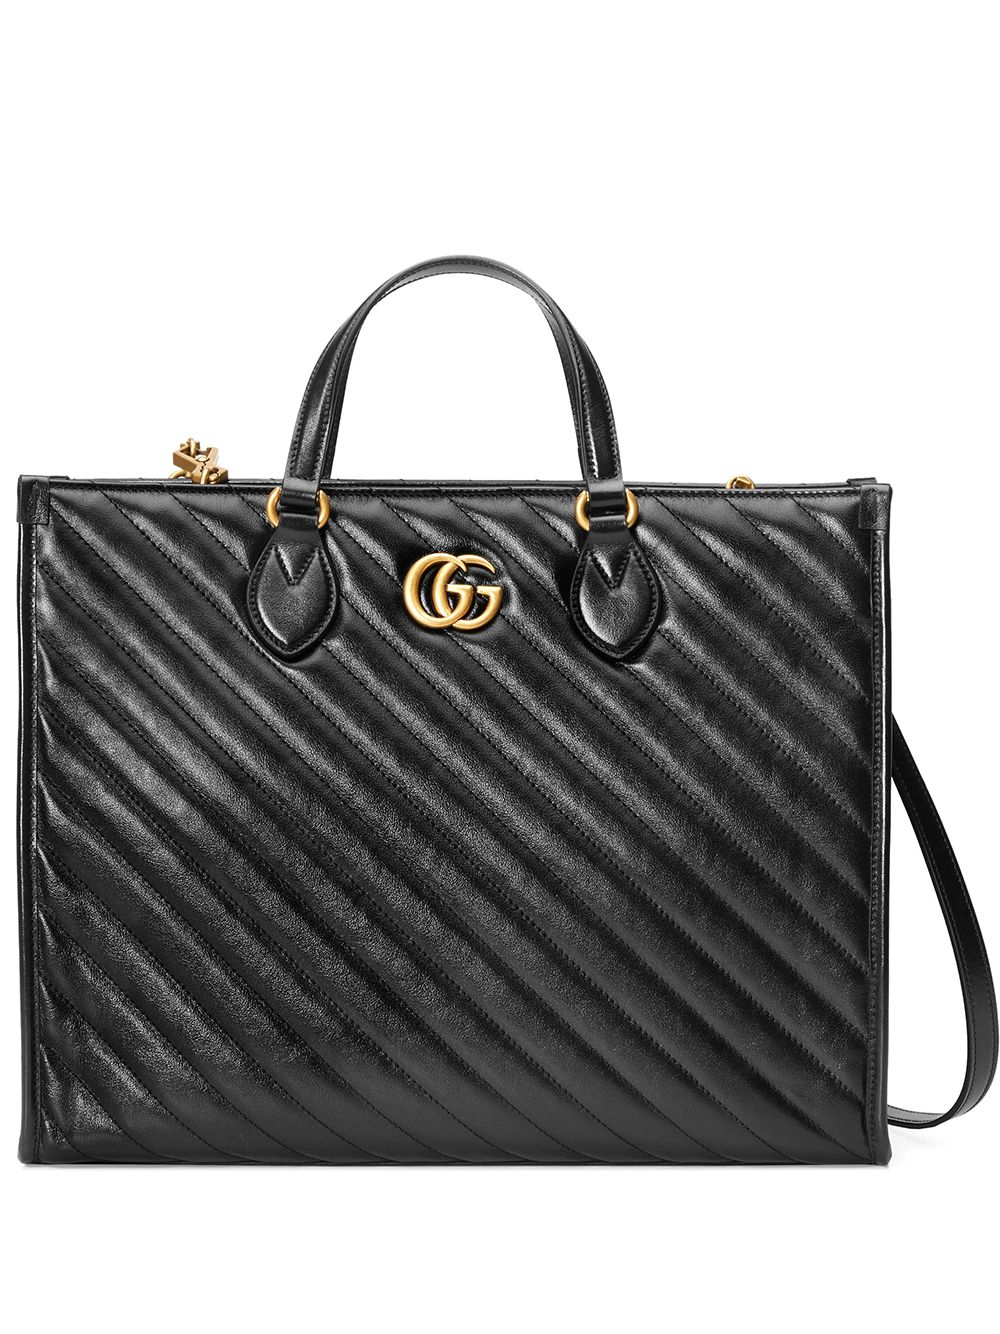 Gg Marmont Top-handle Tote Bag